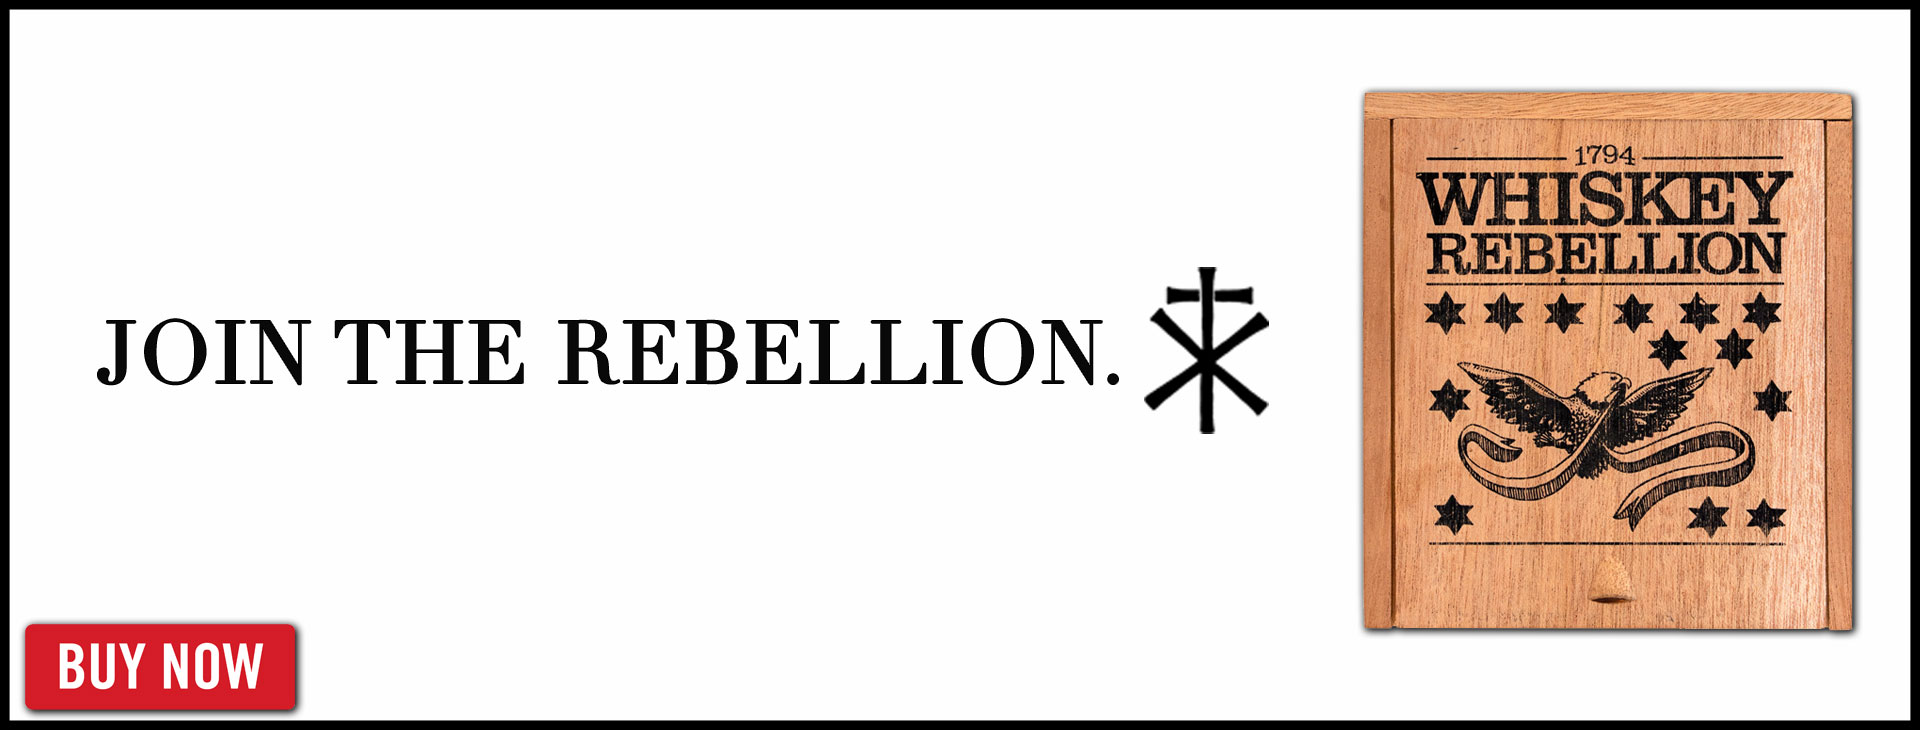 whiskey-rebellion-2020-2-banner.jpg